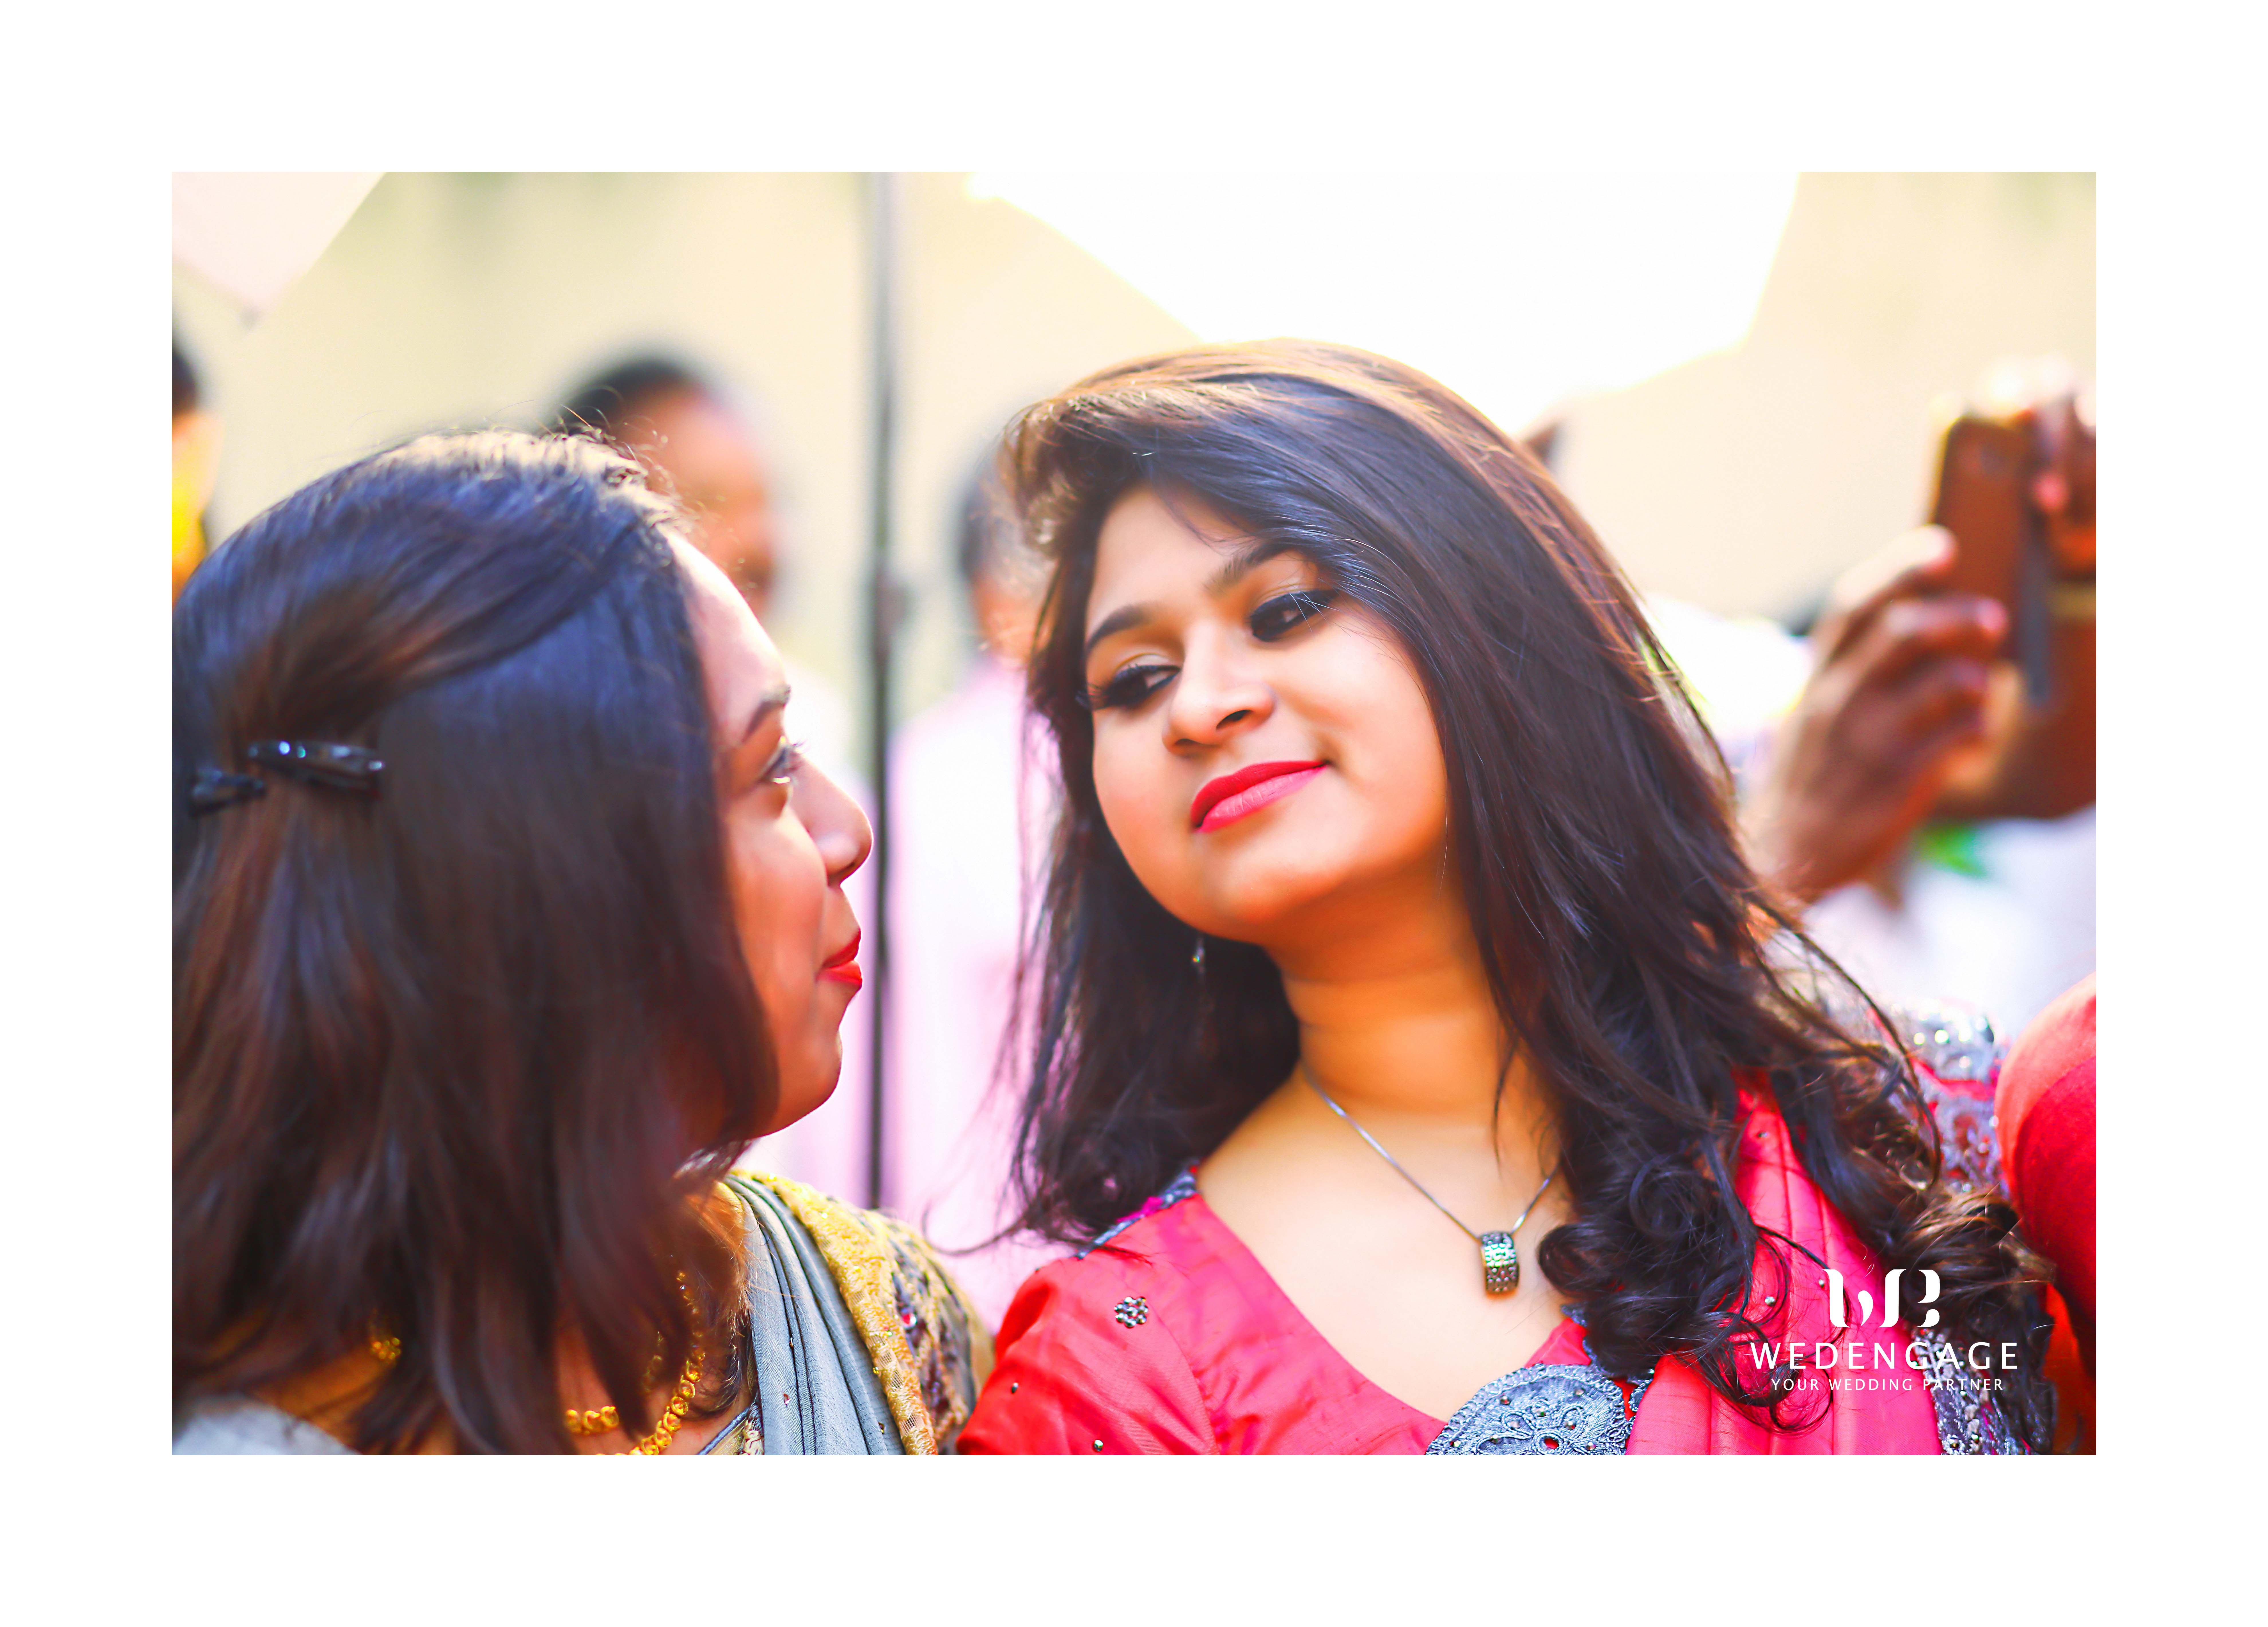 Candid photography